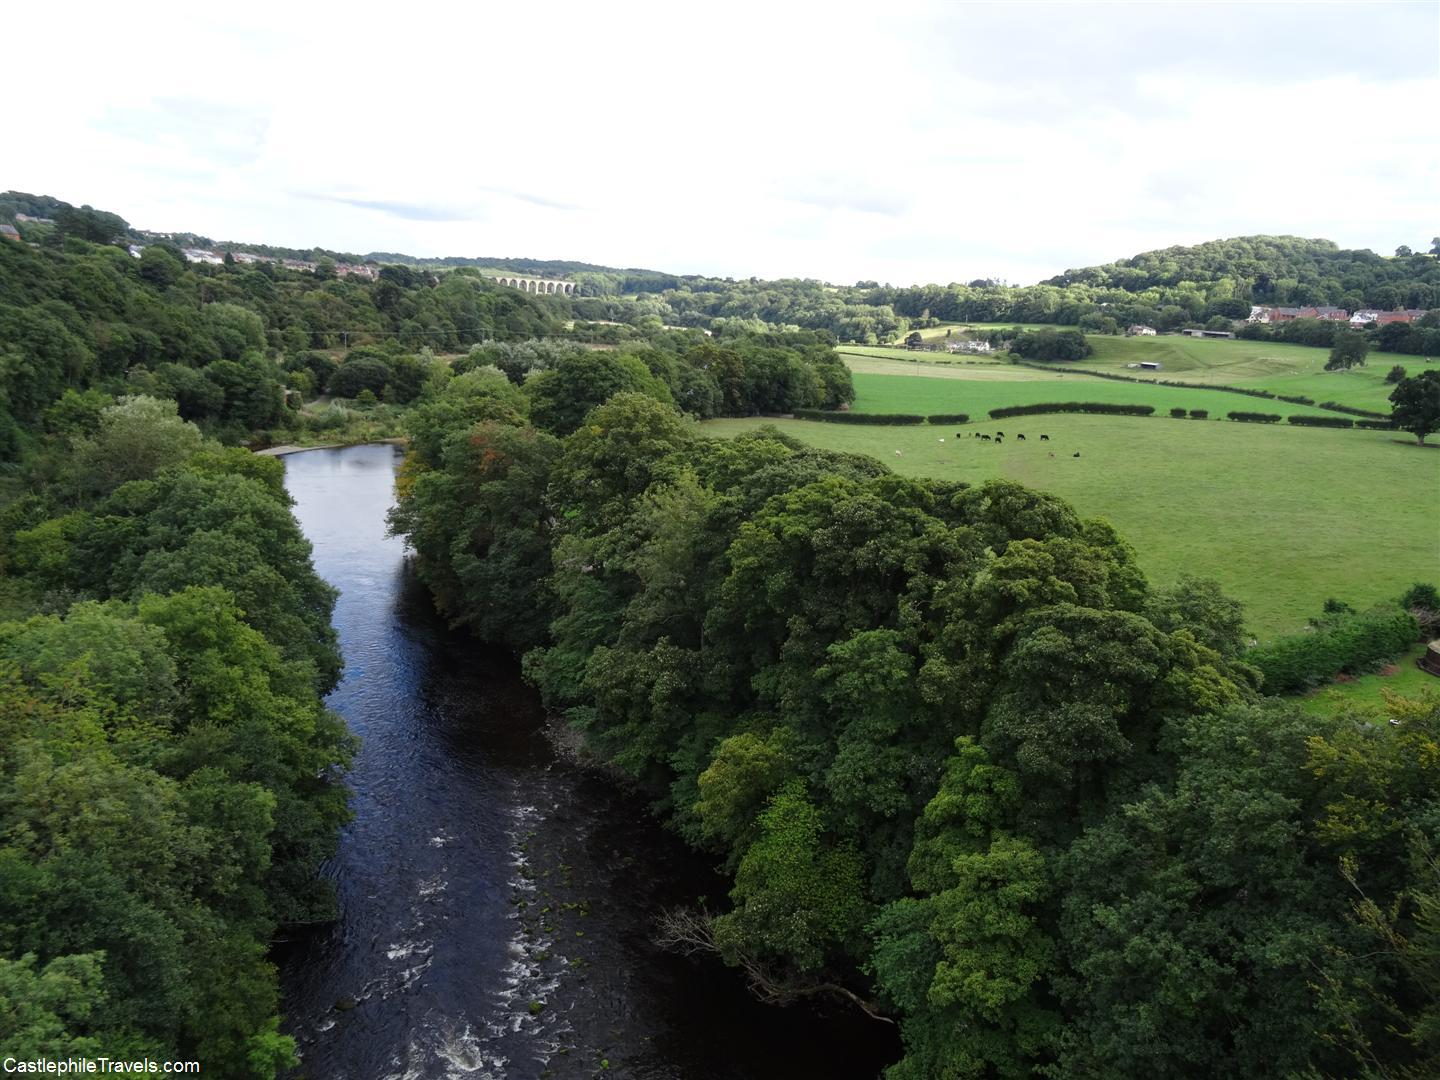 The view from the top of the Pontcysyllte Aqueduct